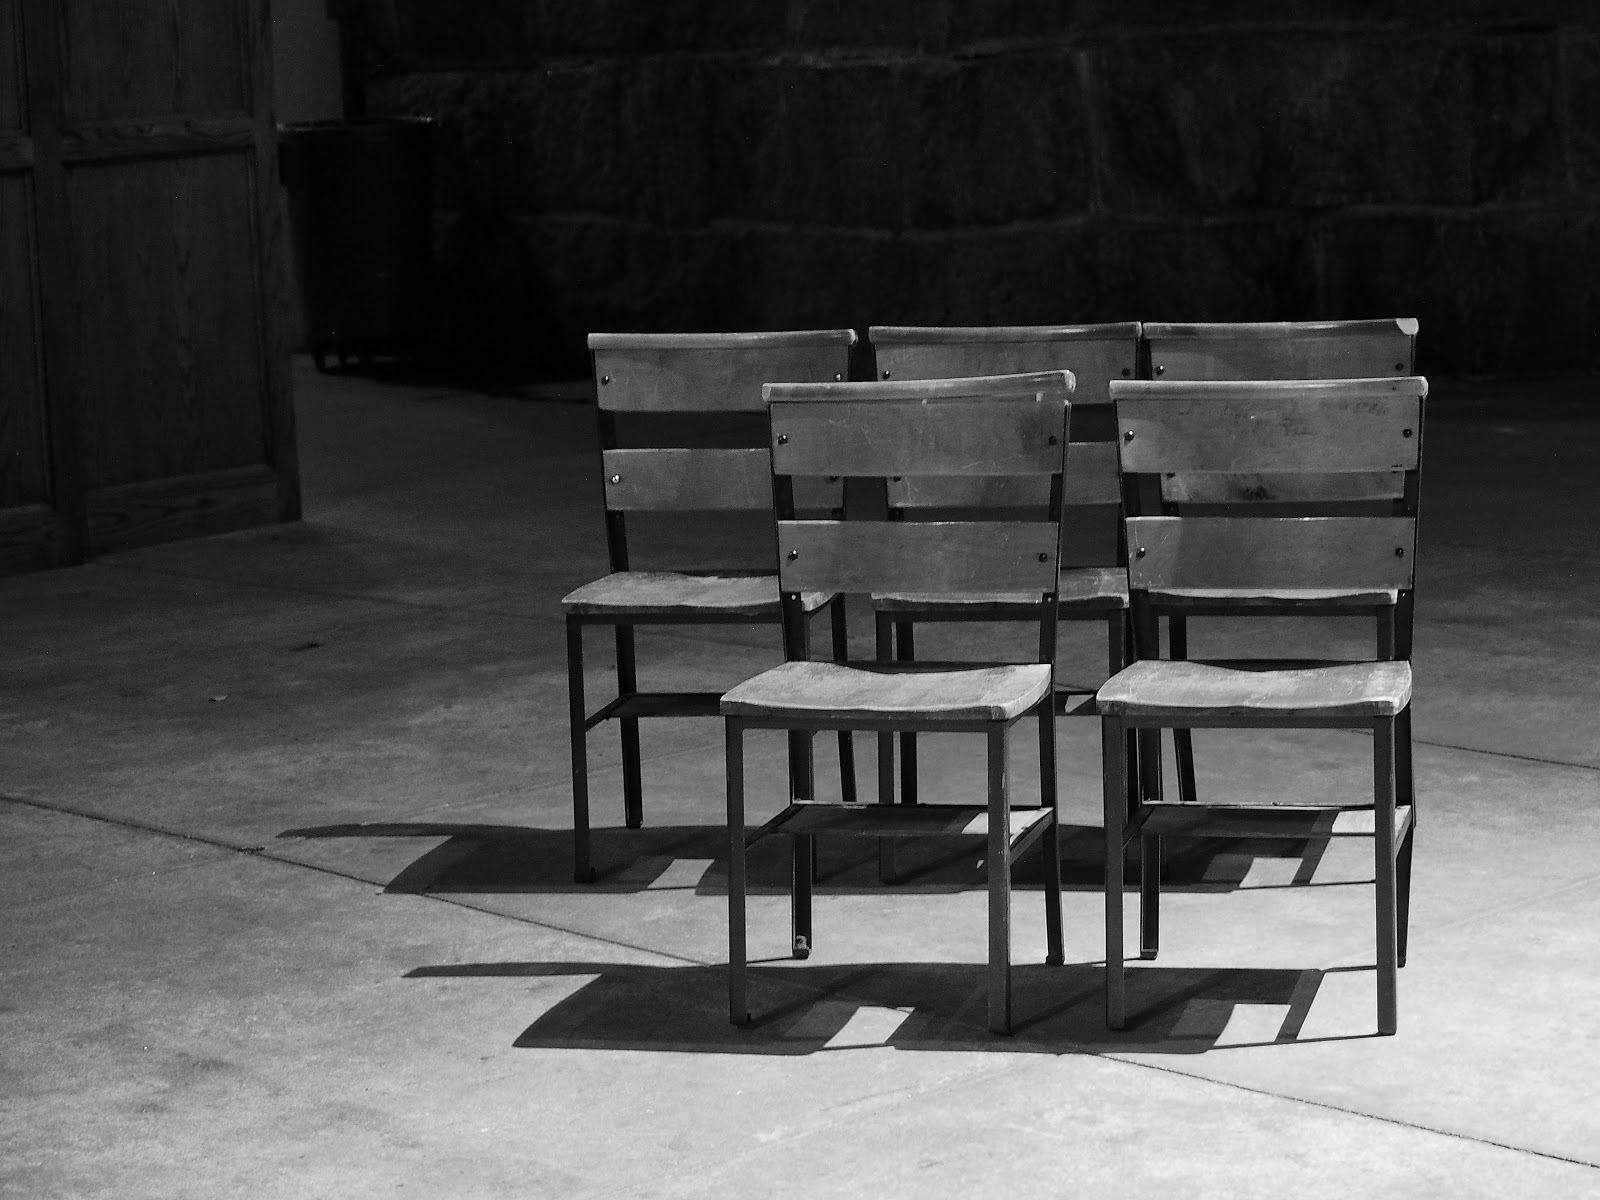 Chairs on an Angle - Black and White #chairsonanangle-bw  #phoenix  #xubing #stjohnthedivinecathedral #art #nyc ©2014 Nancy Lundebjerg